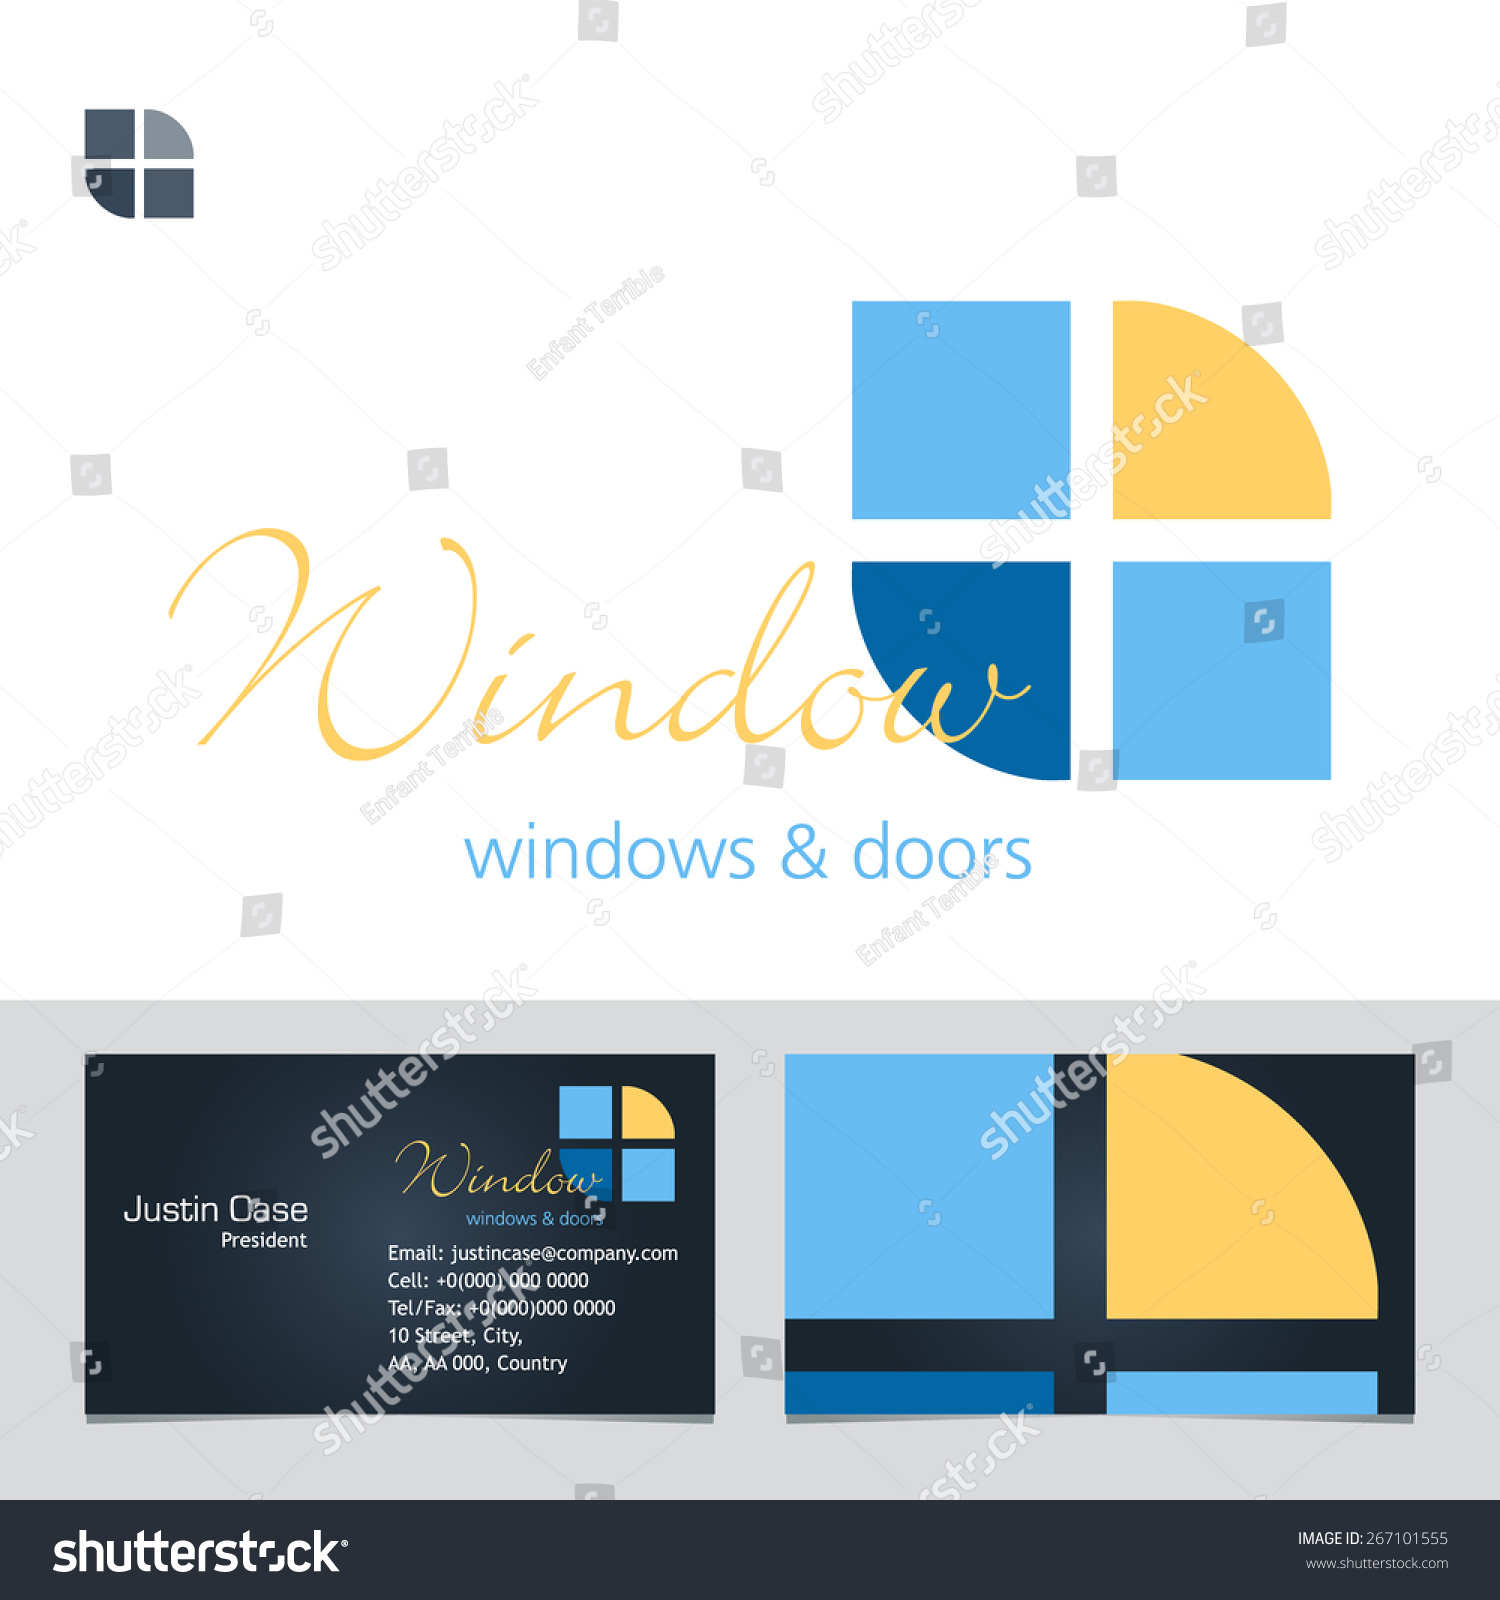 Windows doors business sign business card stock vector 267101555 windows doors business sign business card vector template for windows doors manufacturer magicingreecefo Gallery